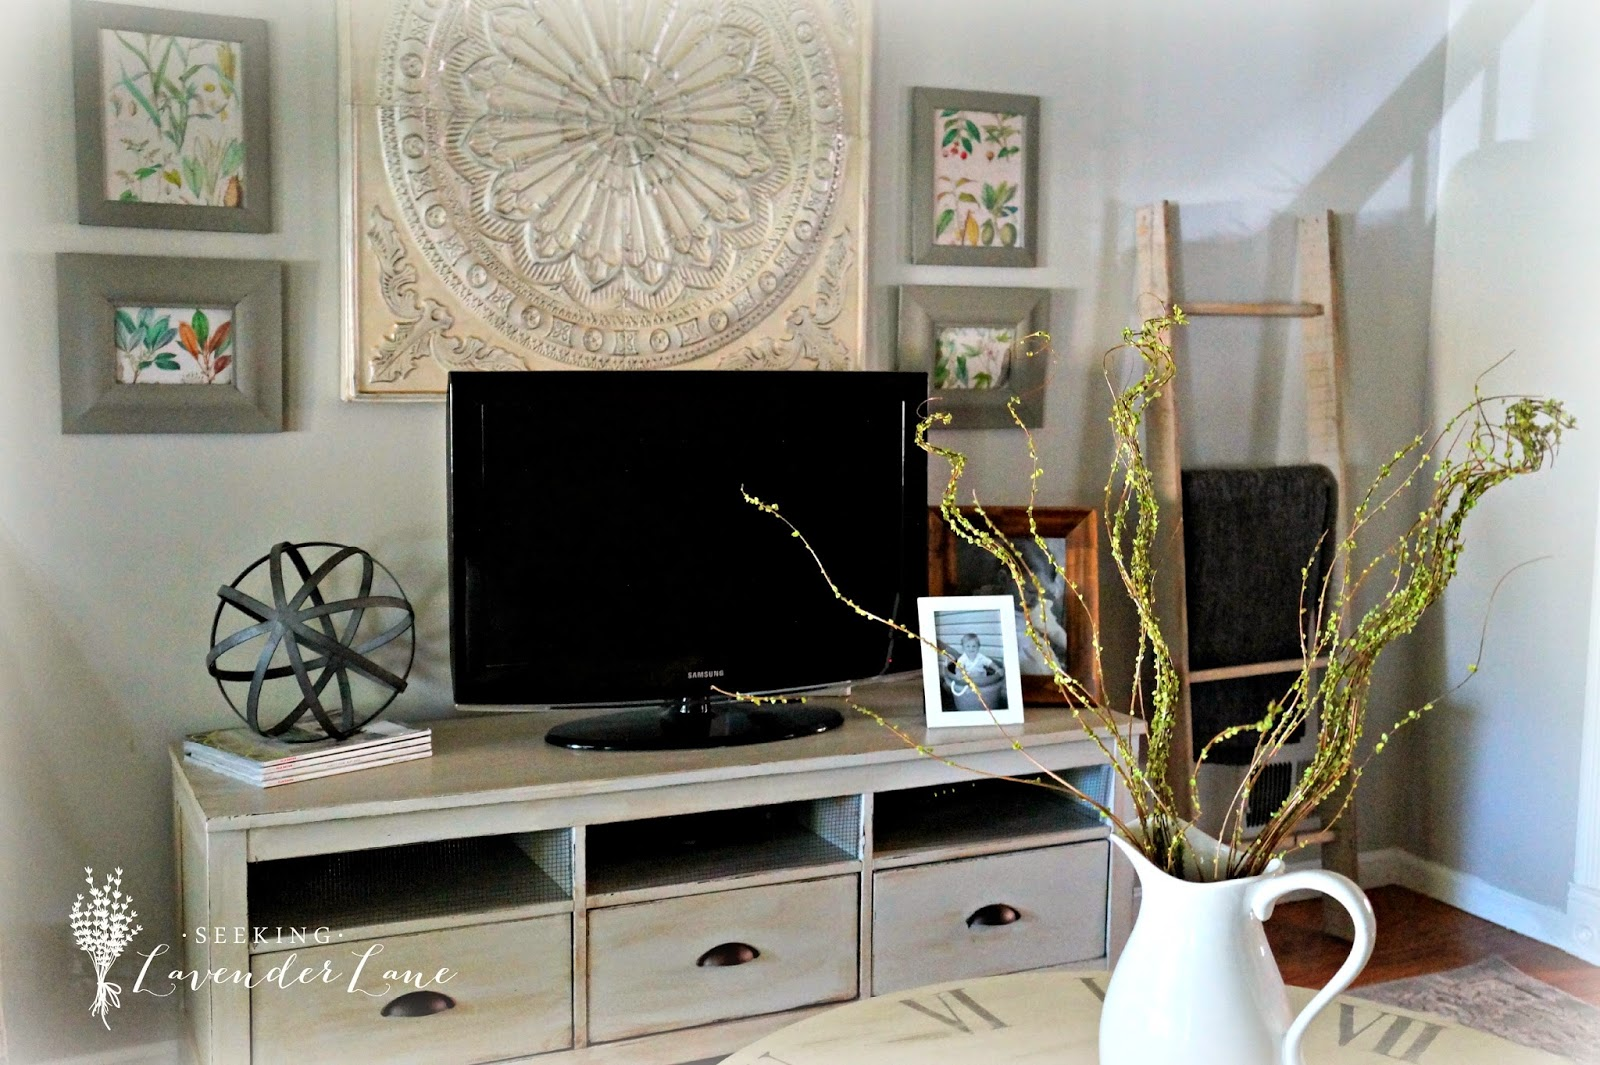 DIY projects from a Pallet